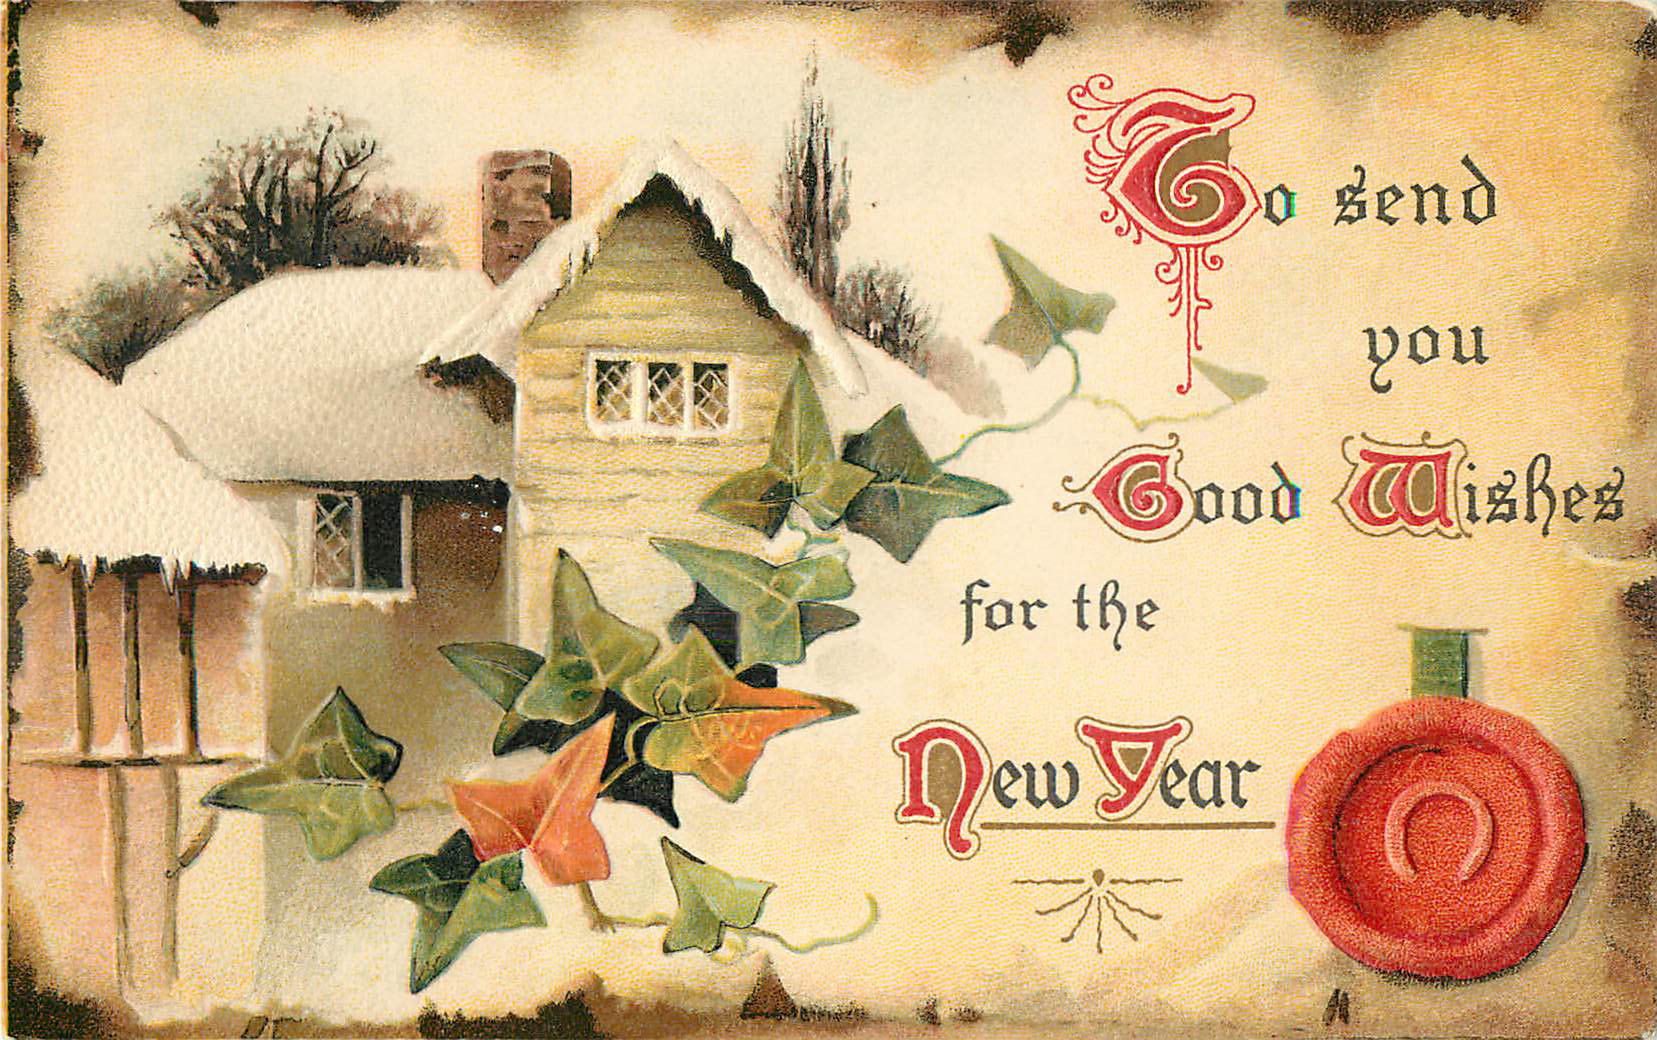 To Send You Good Wishes for the New Year - Postcard